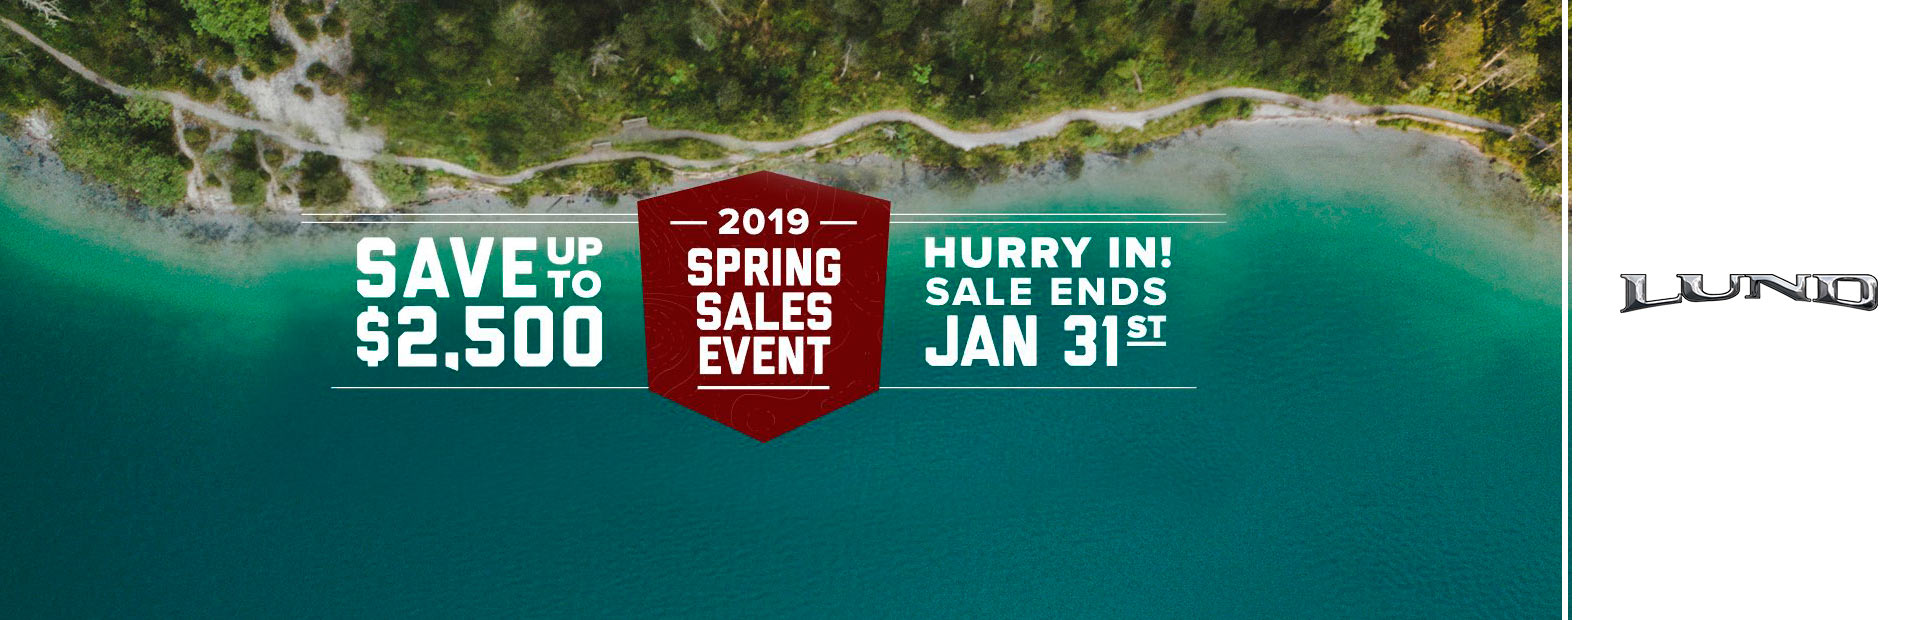 2019 Spring Sales Event